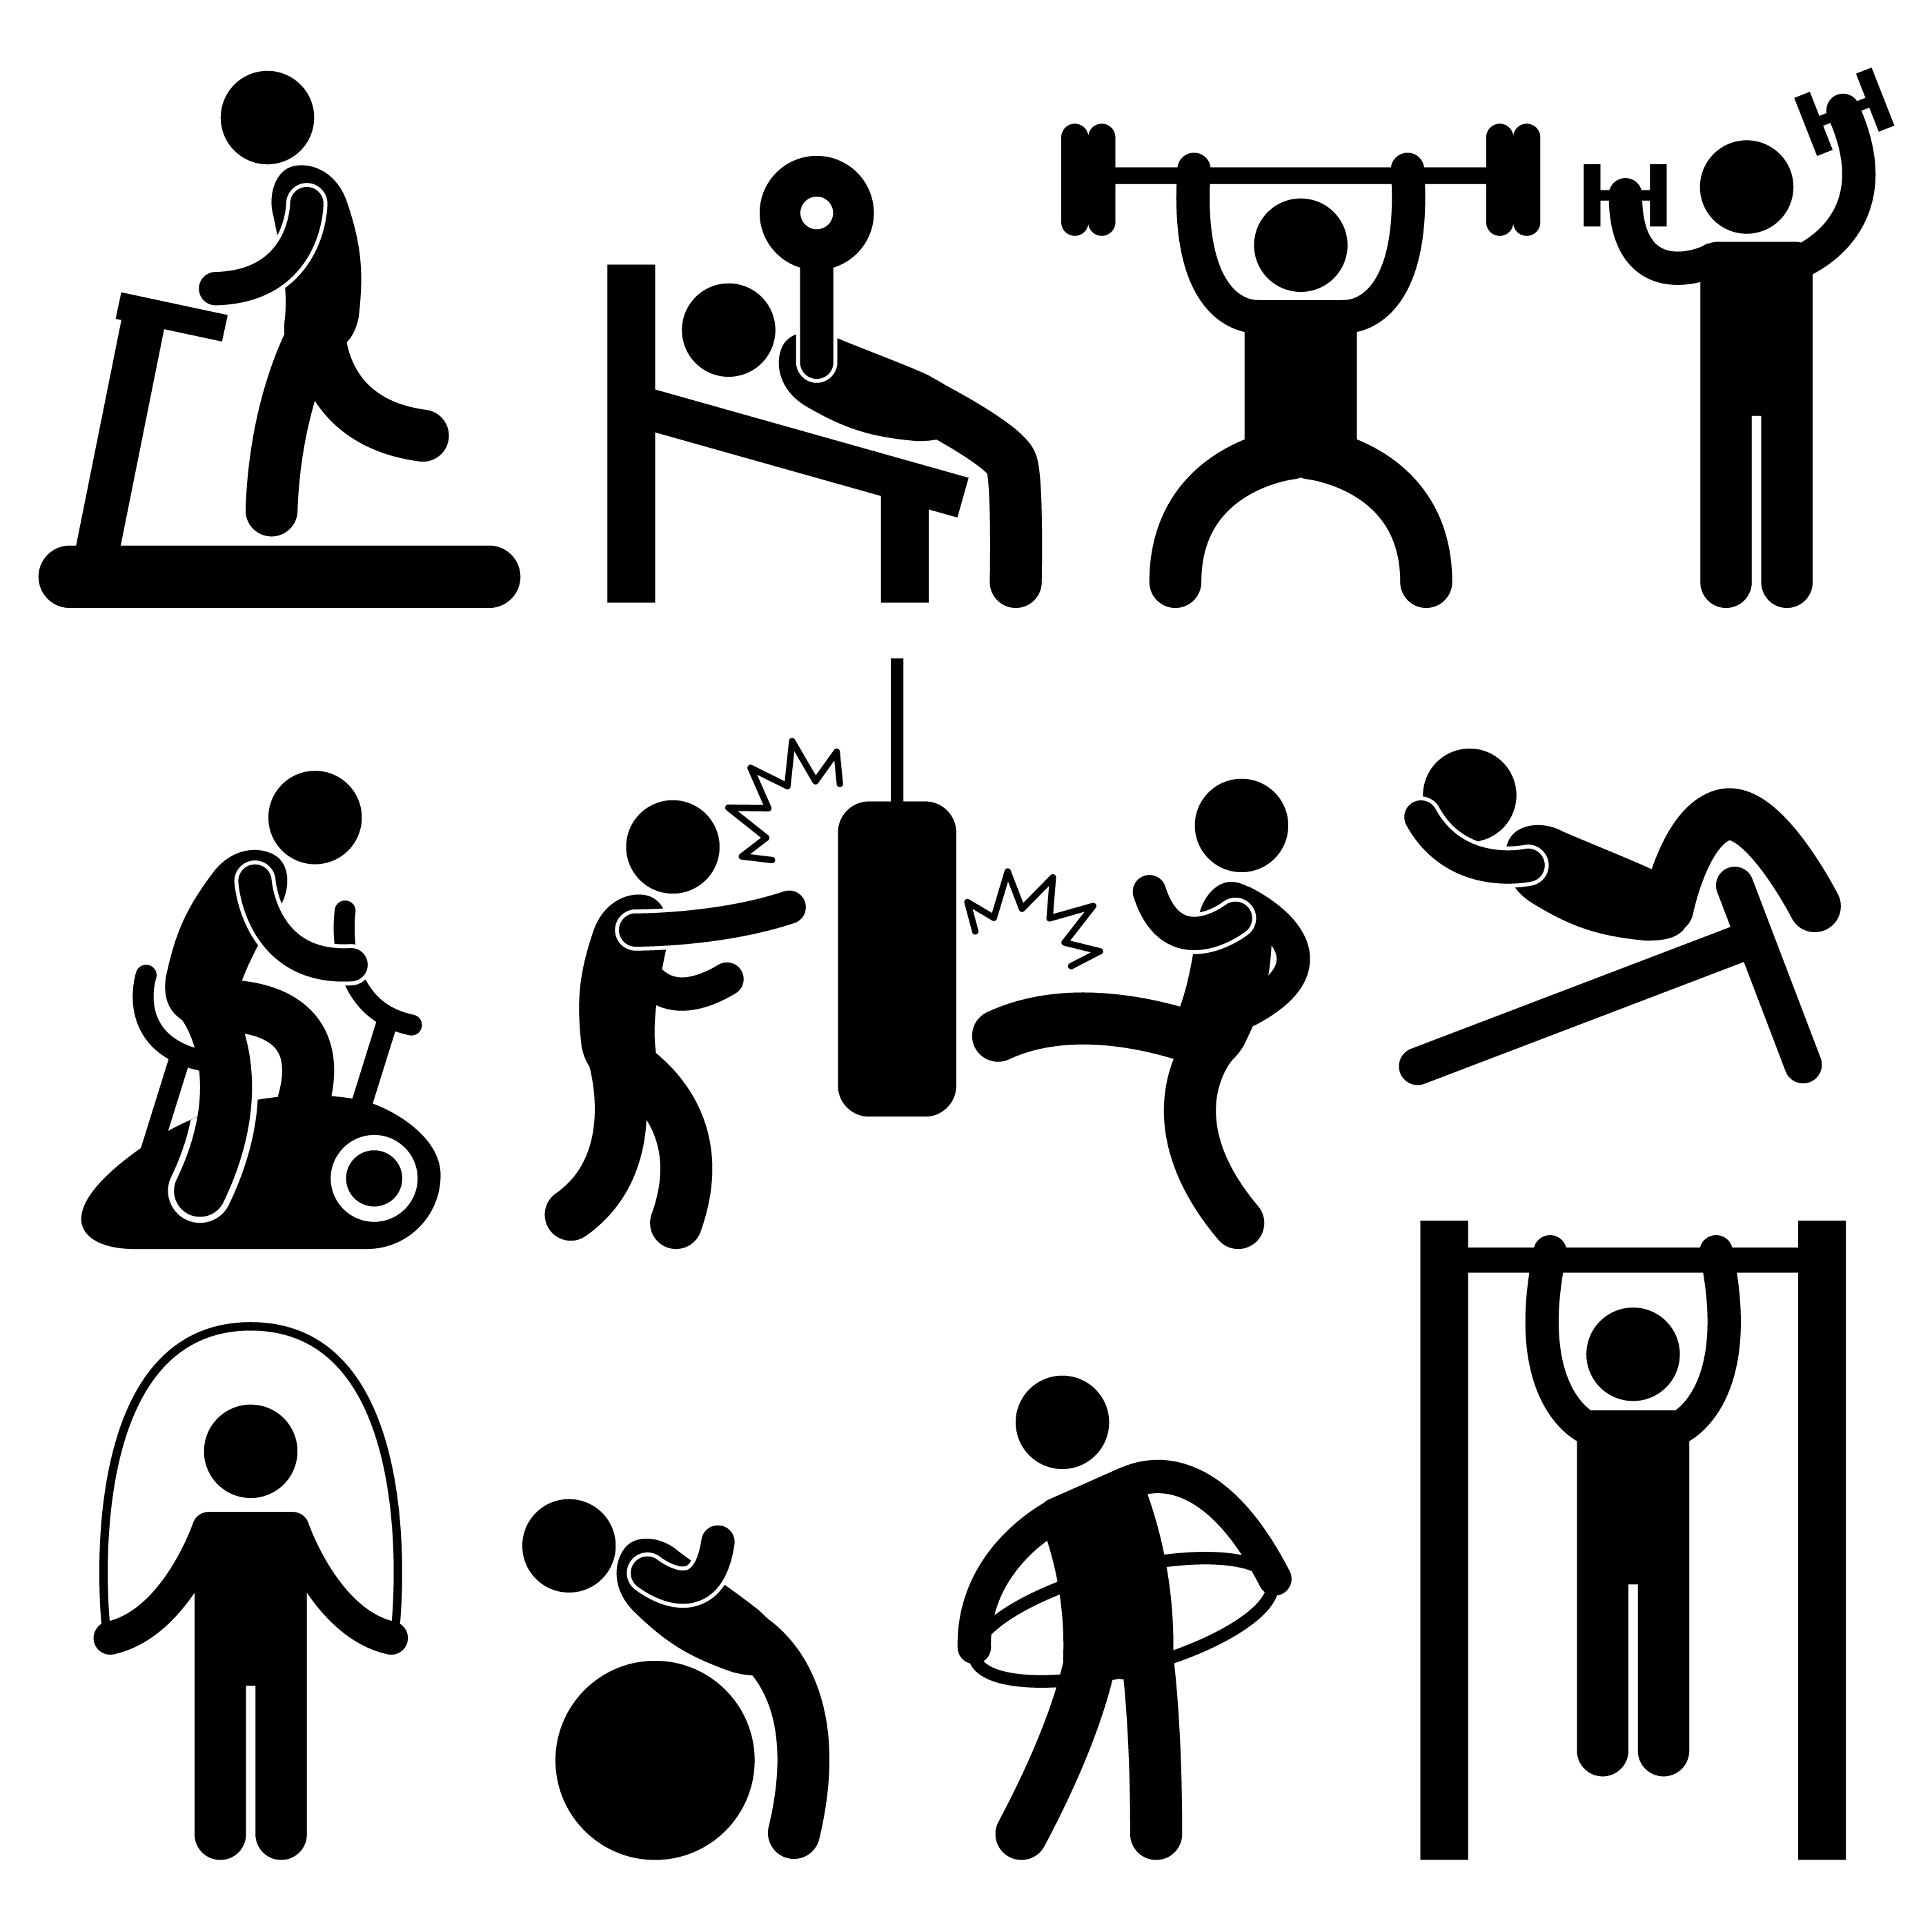 Man Athletic Gym Gymnasium Body Exercise Workout Pictogram Download Free Vectors Clipart Graphics Vector Art